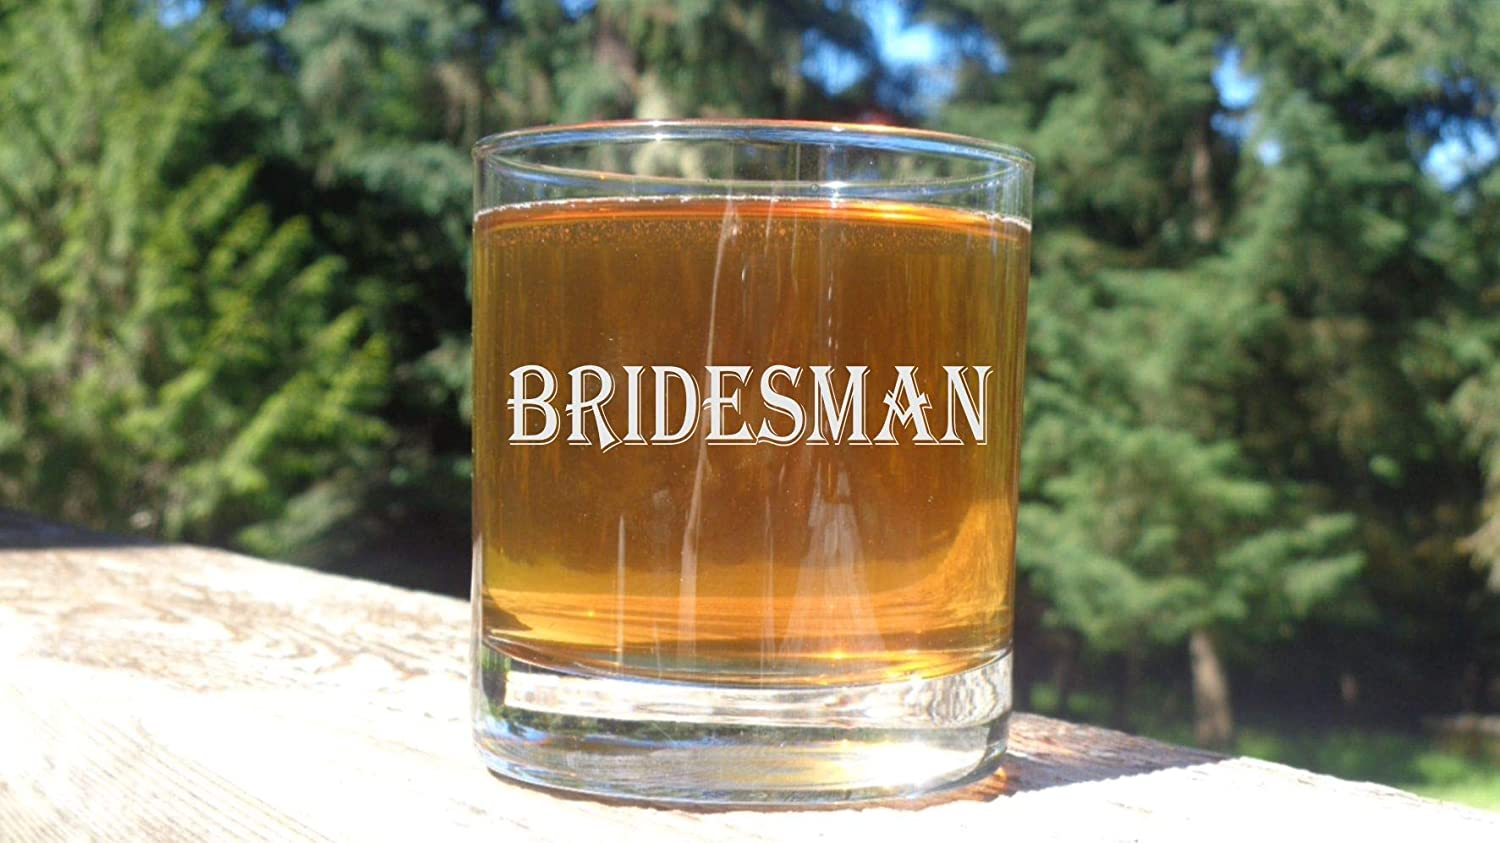 Bridesman Whiskey Glass Male Bridesmaid Bourbon Glasses Gift for Brides Man Wedding Party Glasses